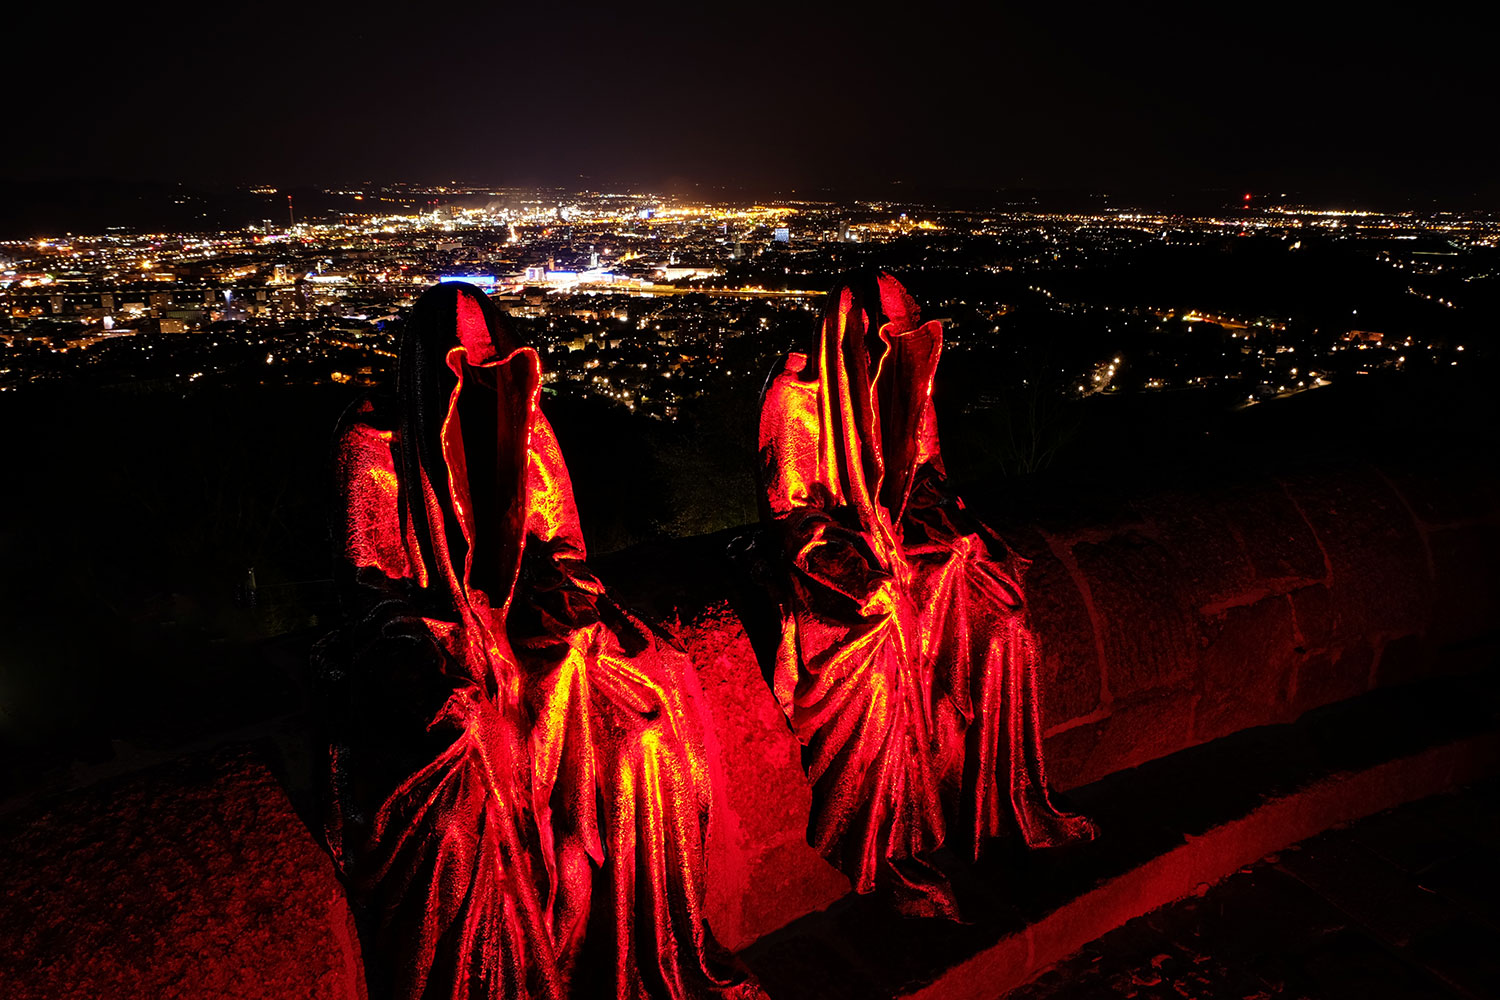 linz-austria-contemporary-art-arts-arte-design-sculpture-statue-guardians-of-time-manfred-kielnhofer-0389y